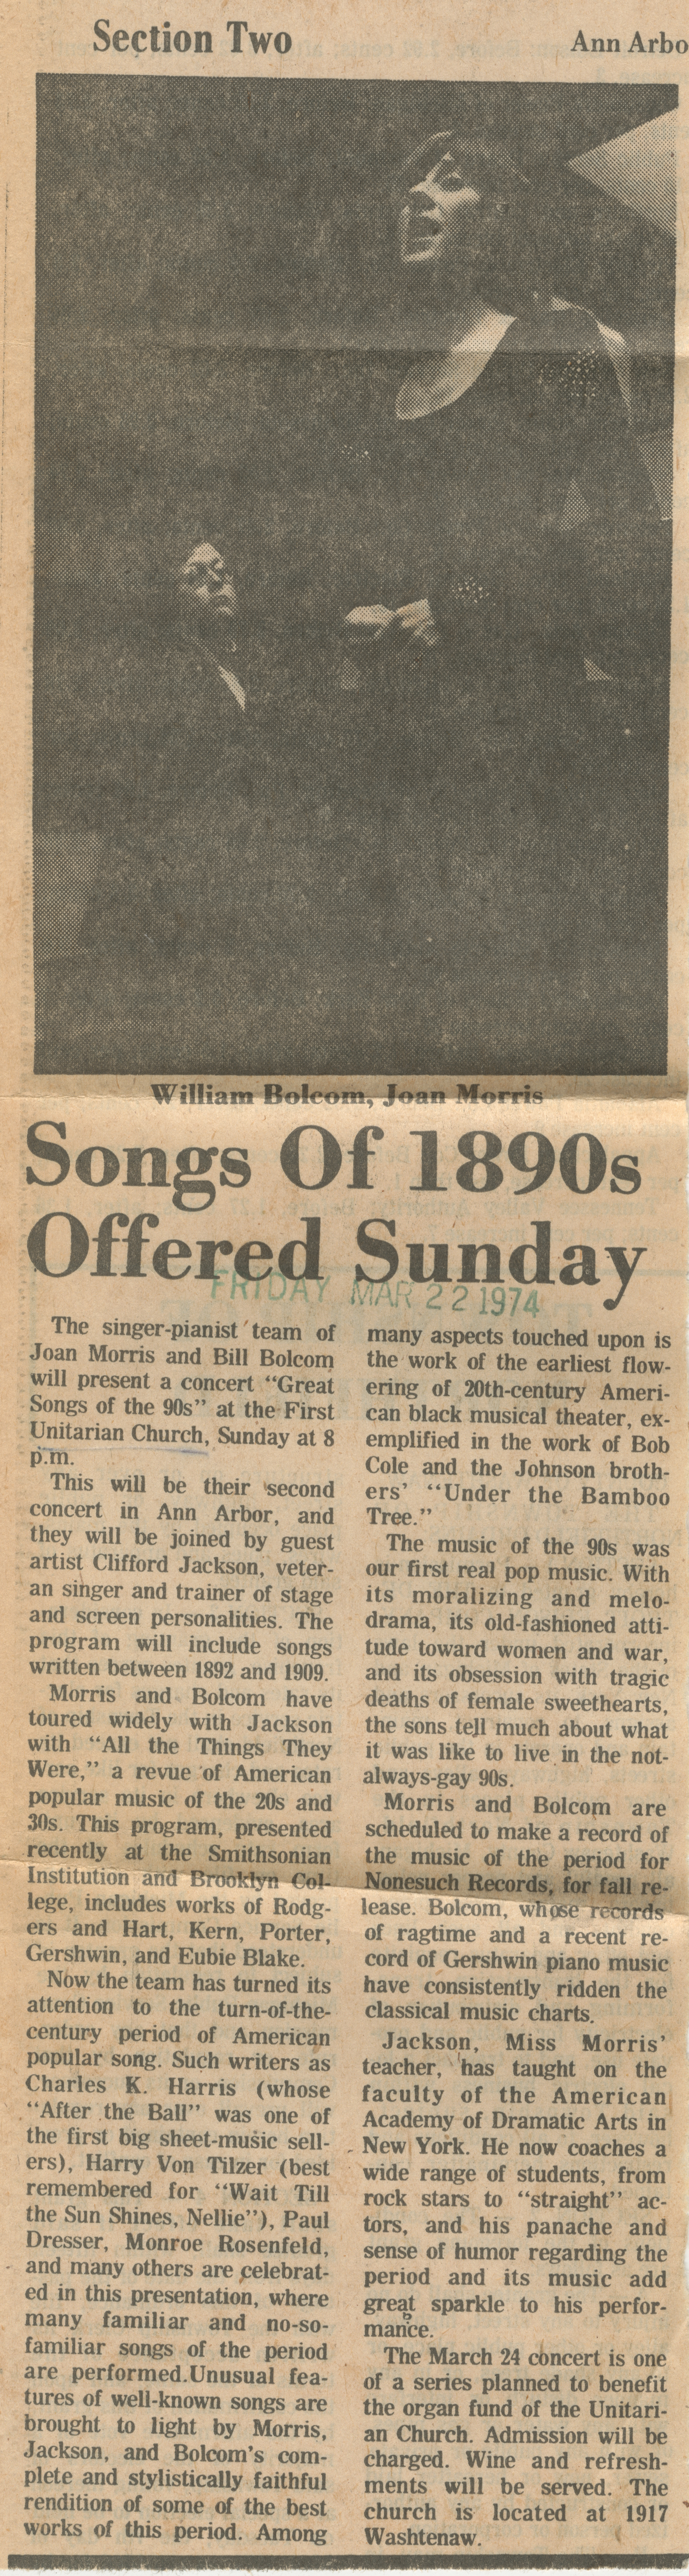 Songs Of 1890s Offered Sunday image